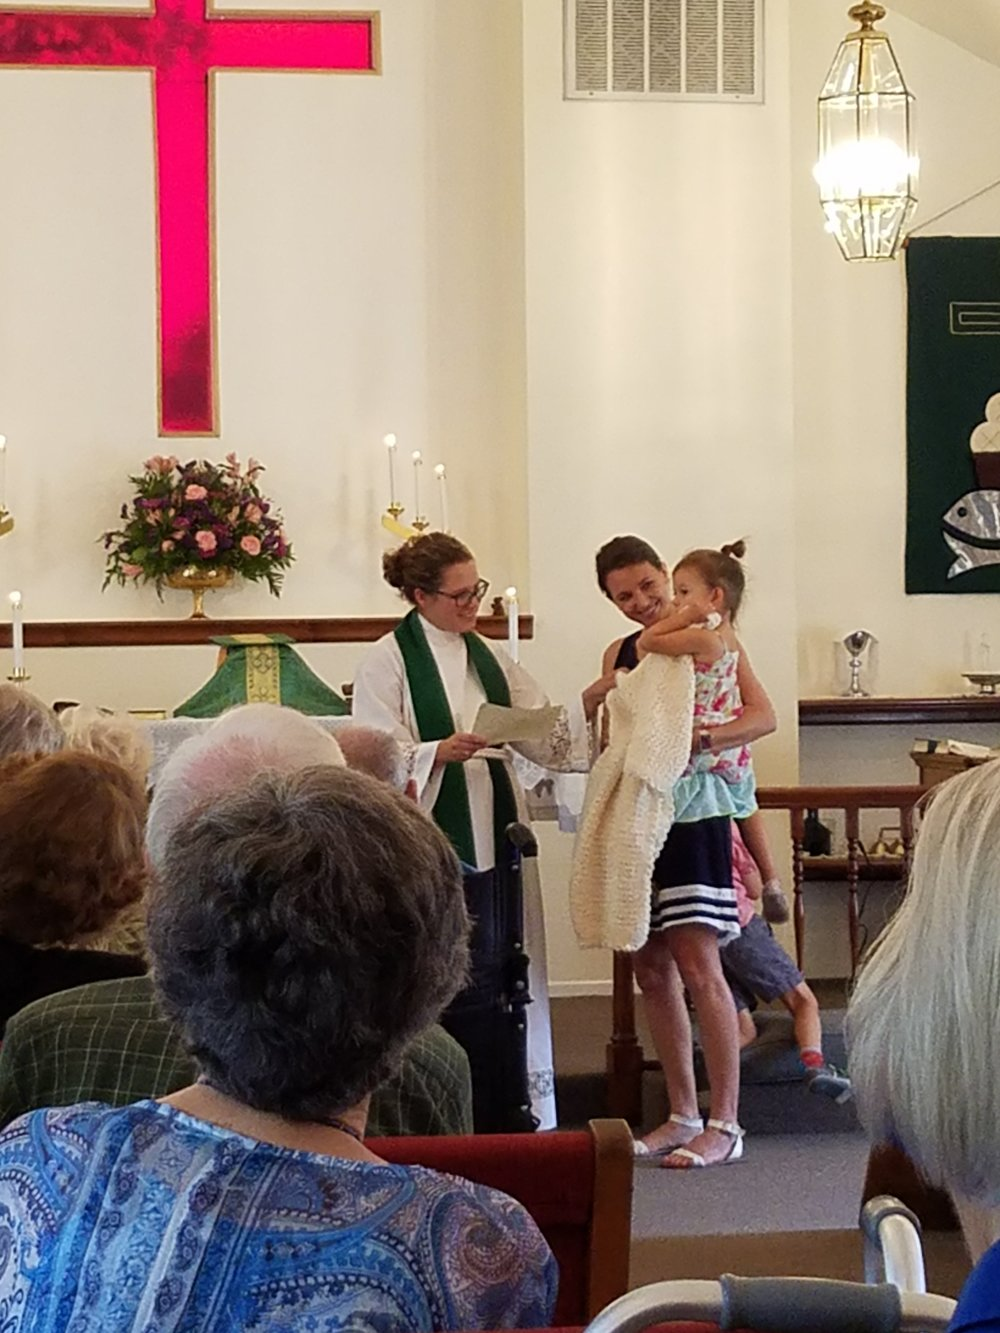 Eloise receiving her prayer shawl - One of our youngest members receives a prayer shawl for her baptism